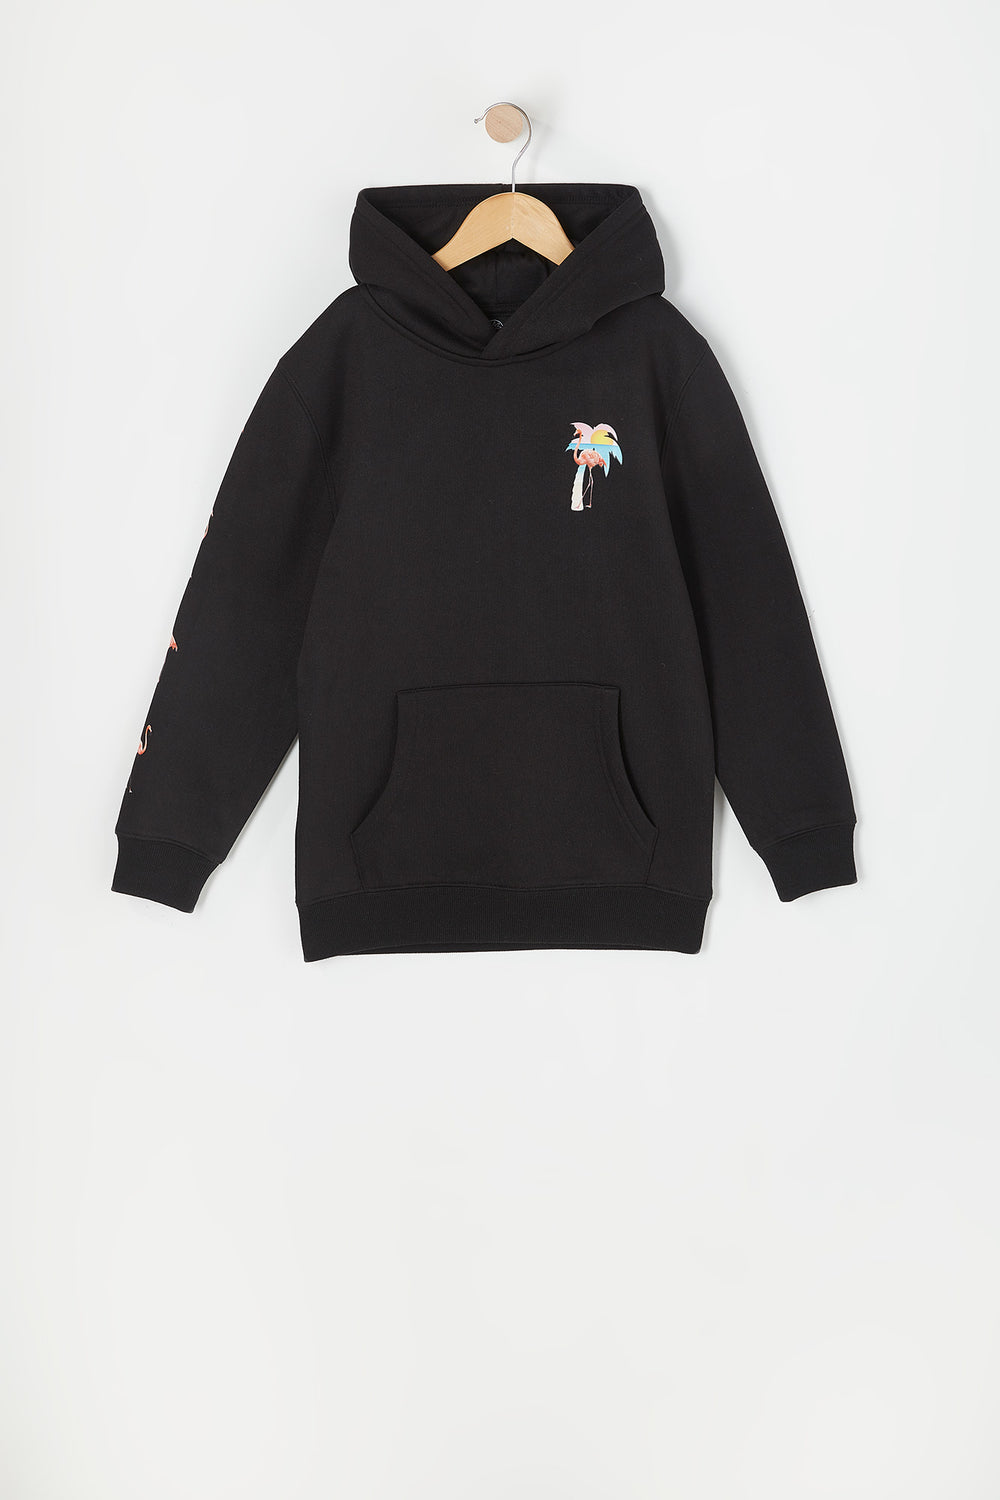 Boys Permanent Paradise Graphic Hoodie Black